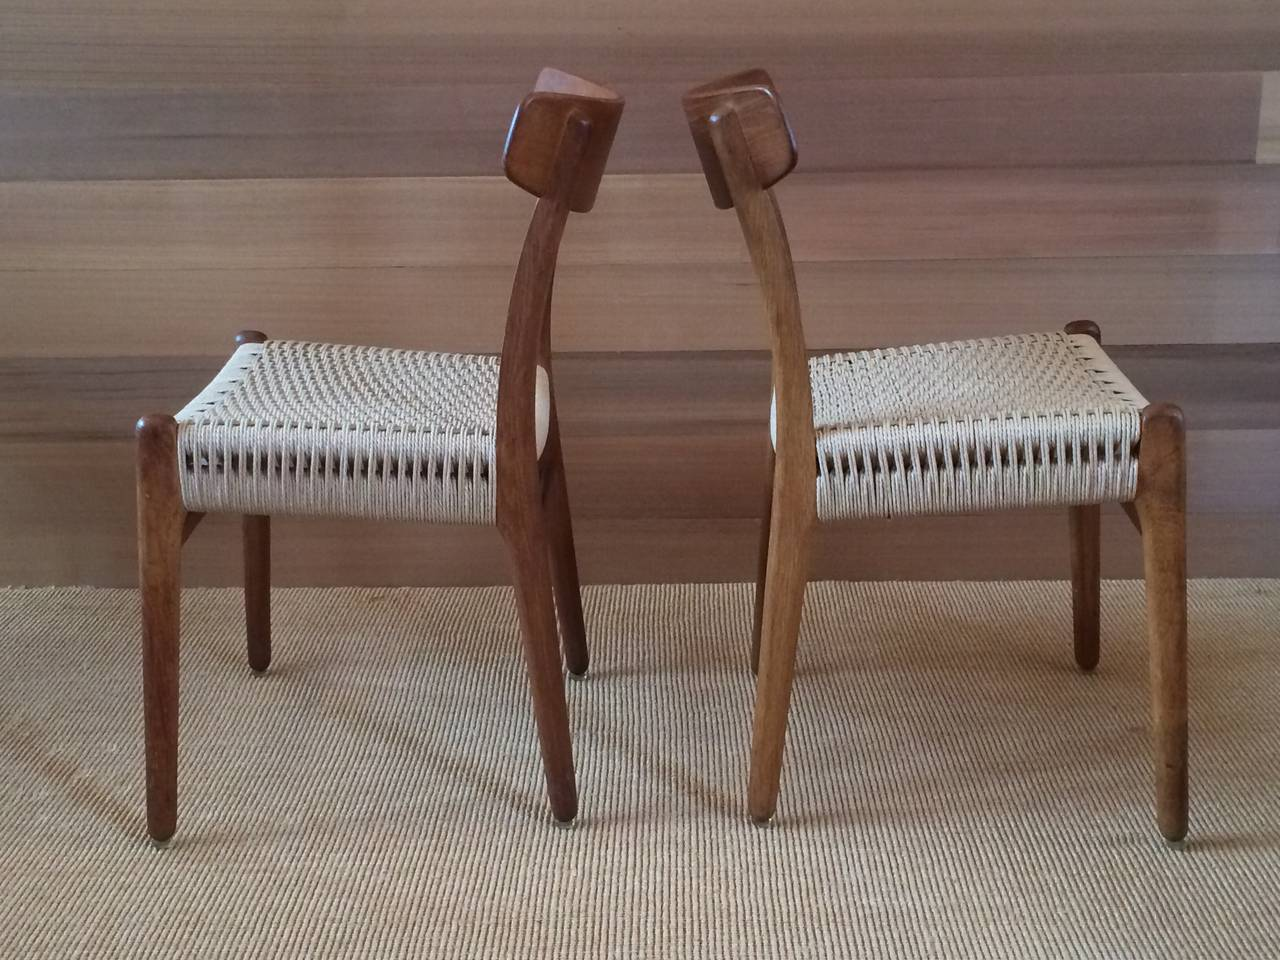 Museum Quality Hans Wegner Chairs in Oak and Paper Cord, 1950 5